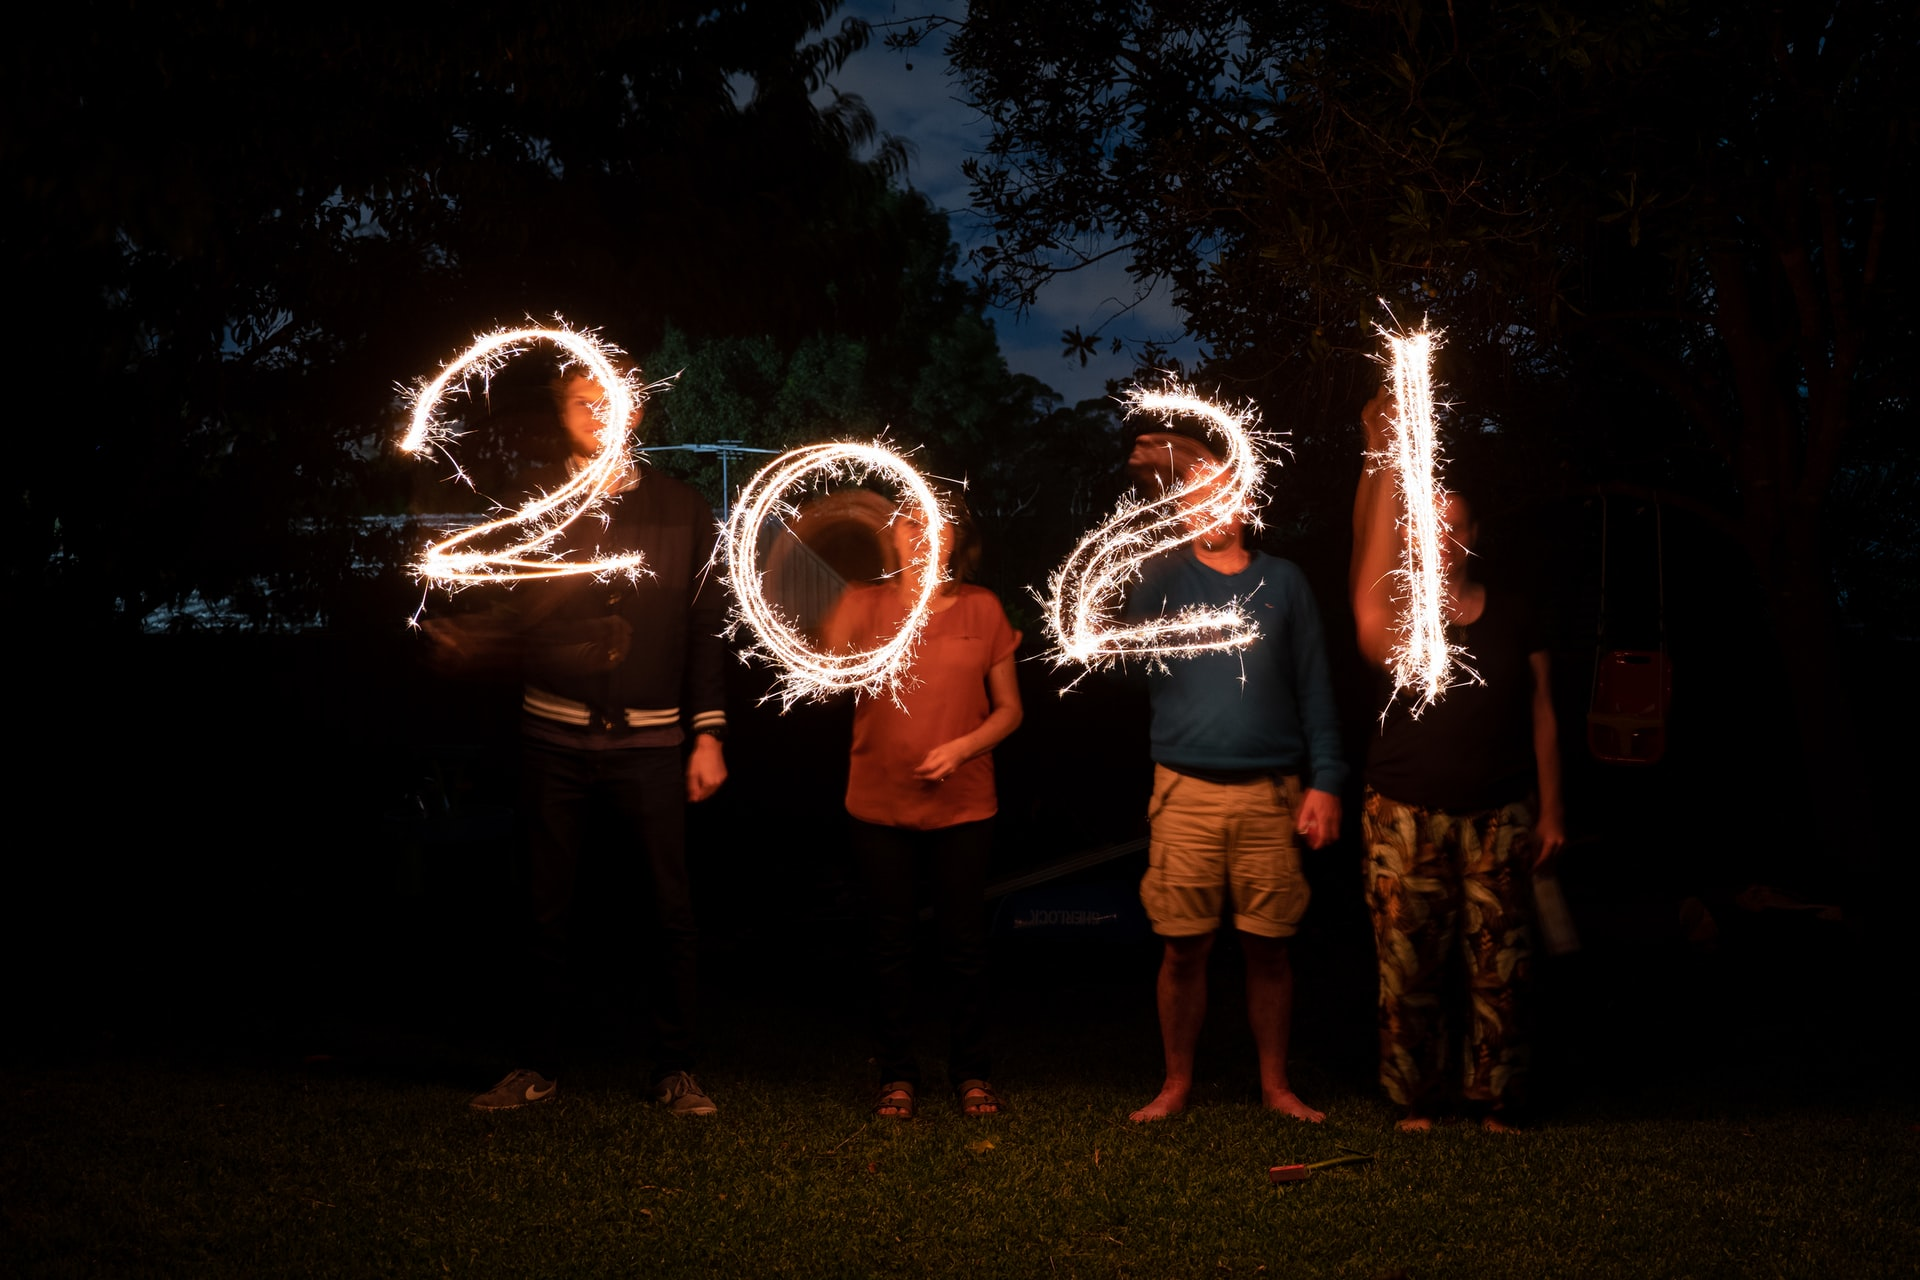 a group of people holding fireworks